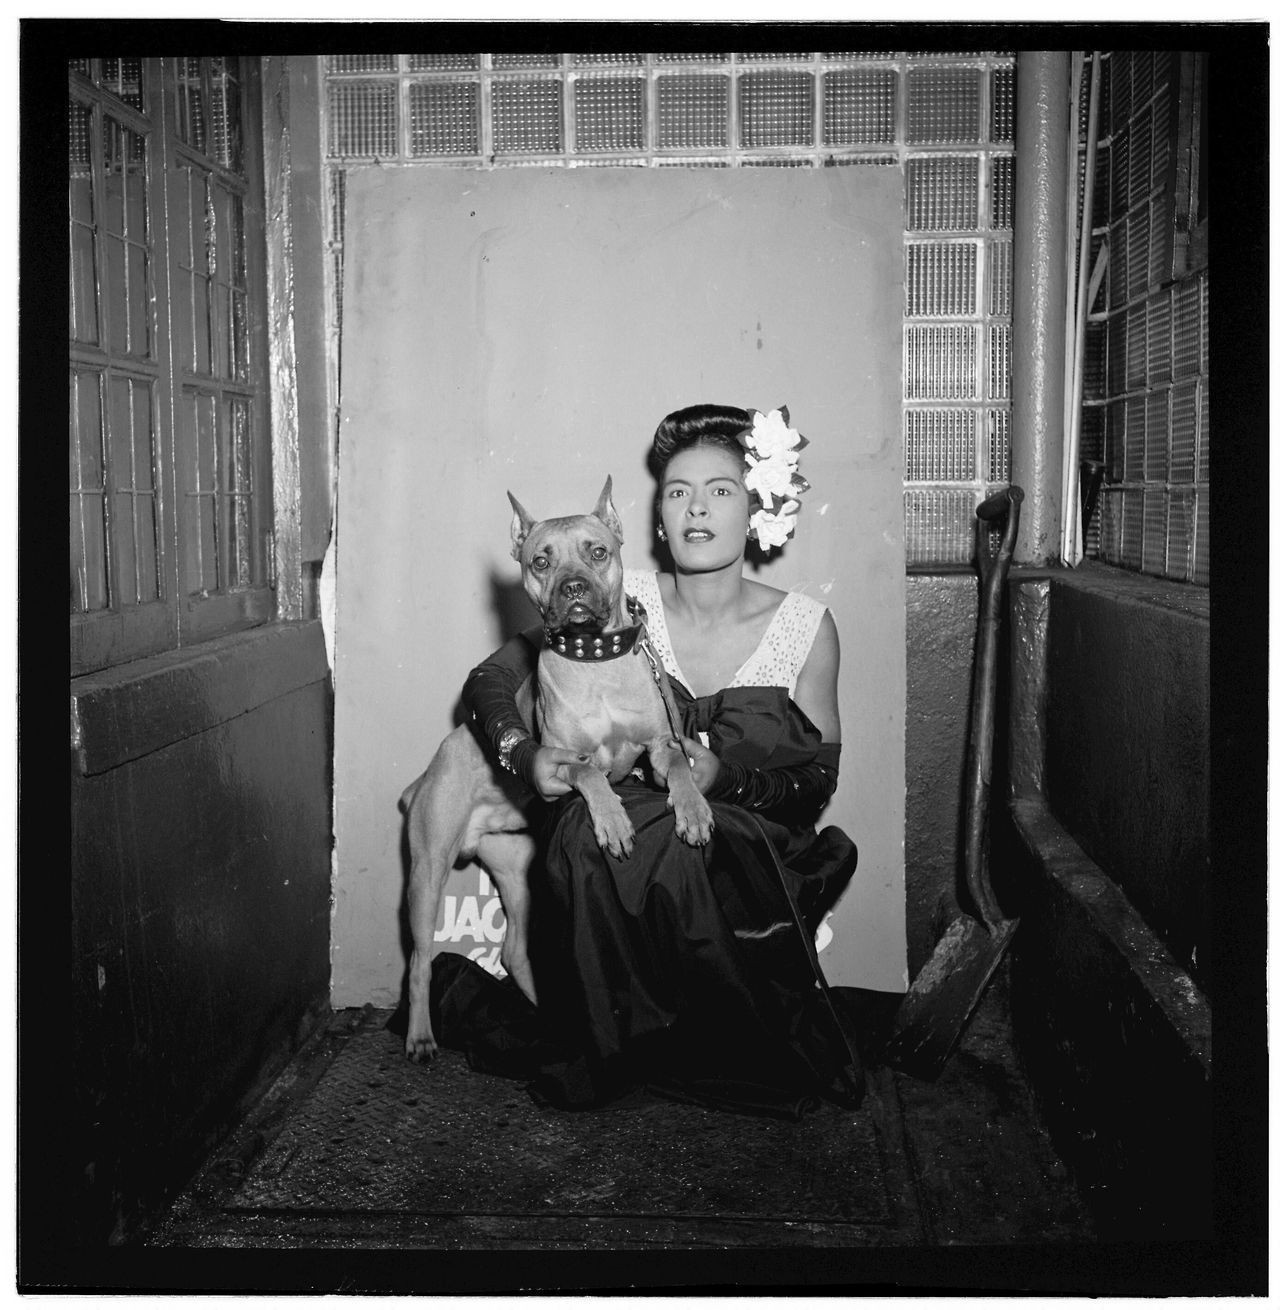 billie holiday WITH CAT